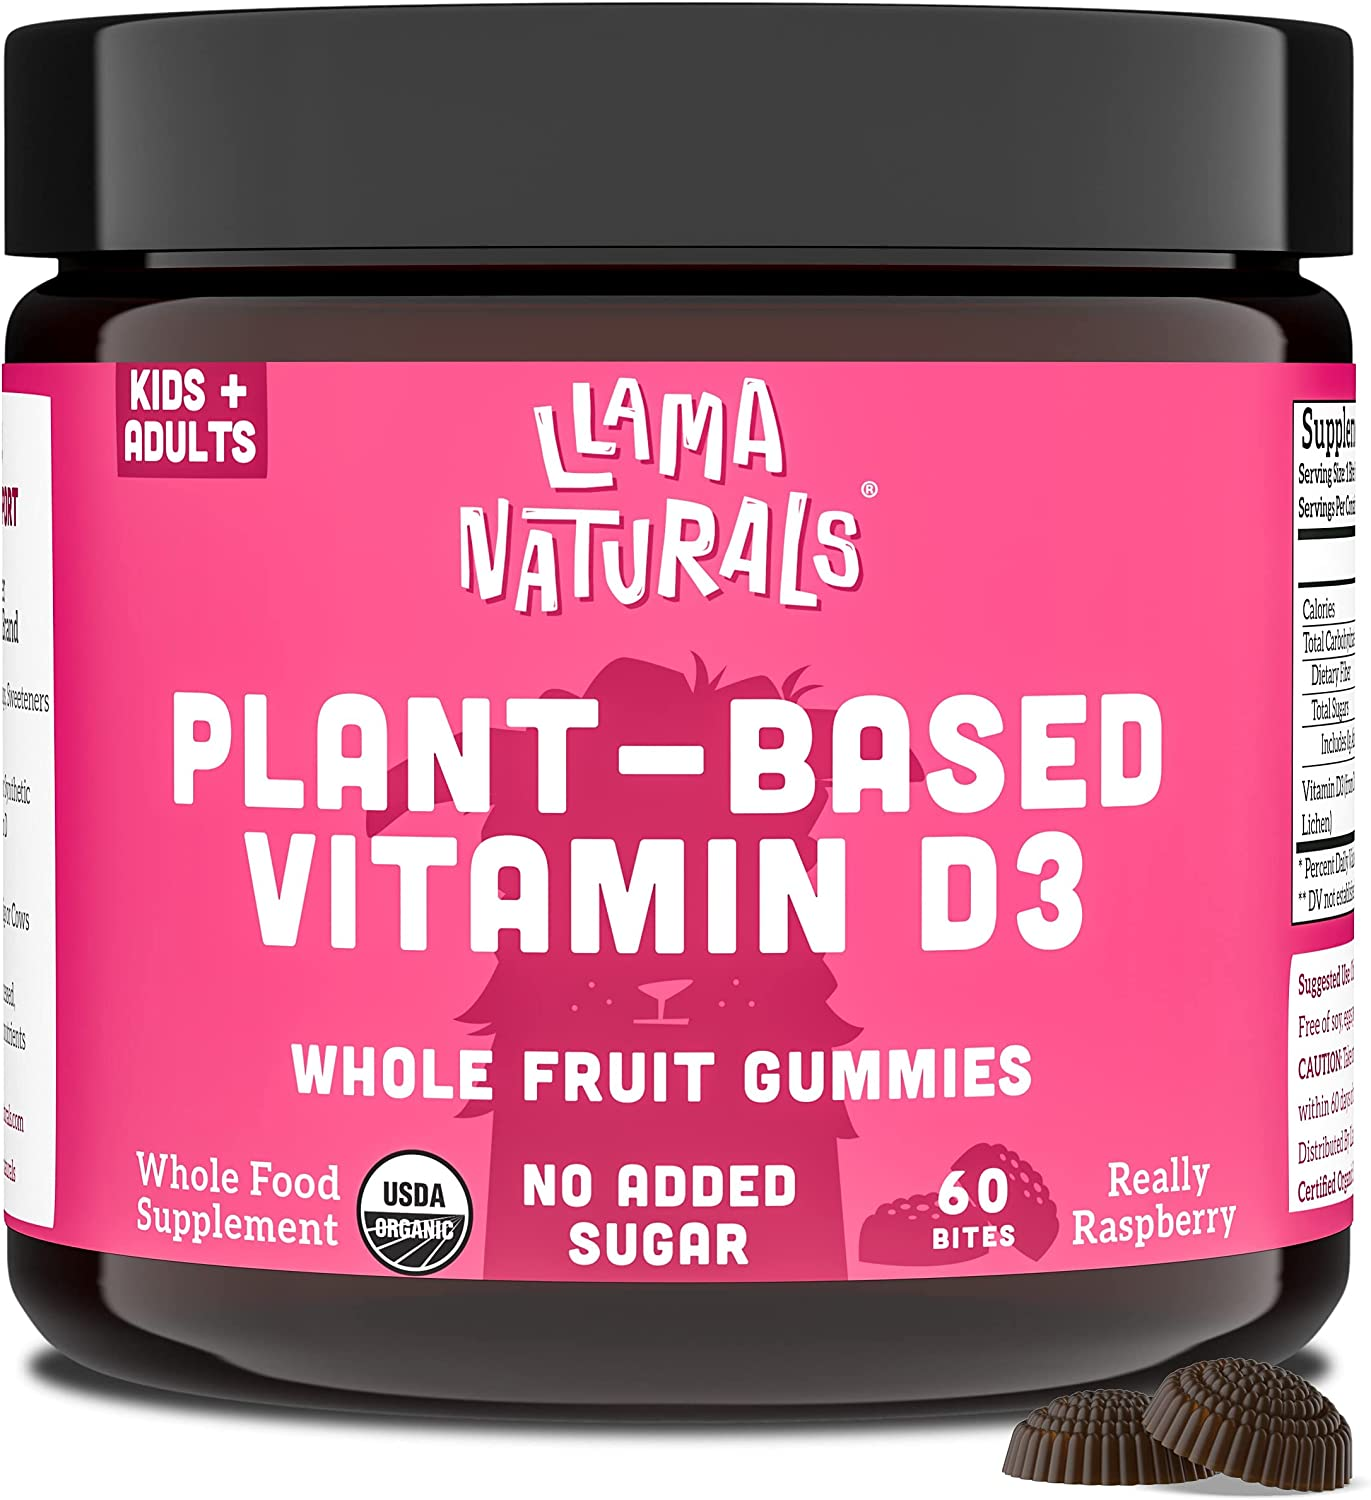 sold out Whole Fruit Vitamin D3 Gummies Adults Sugar ; Oakland Mall No Added + Kids